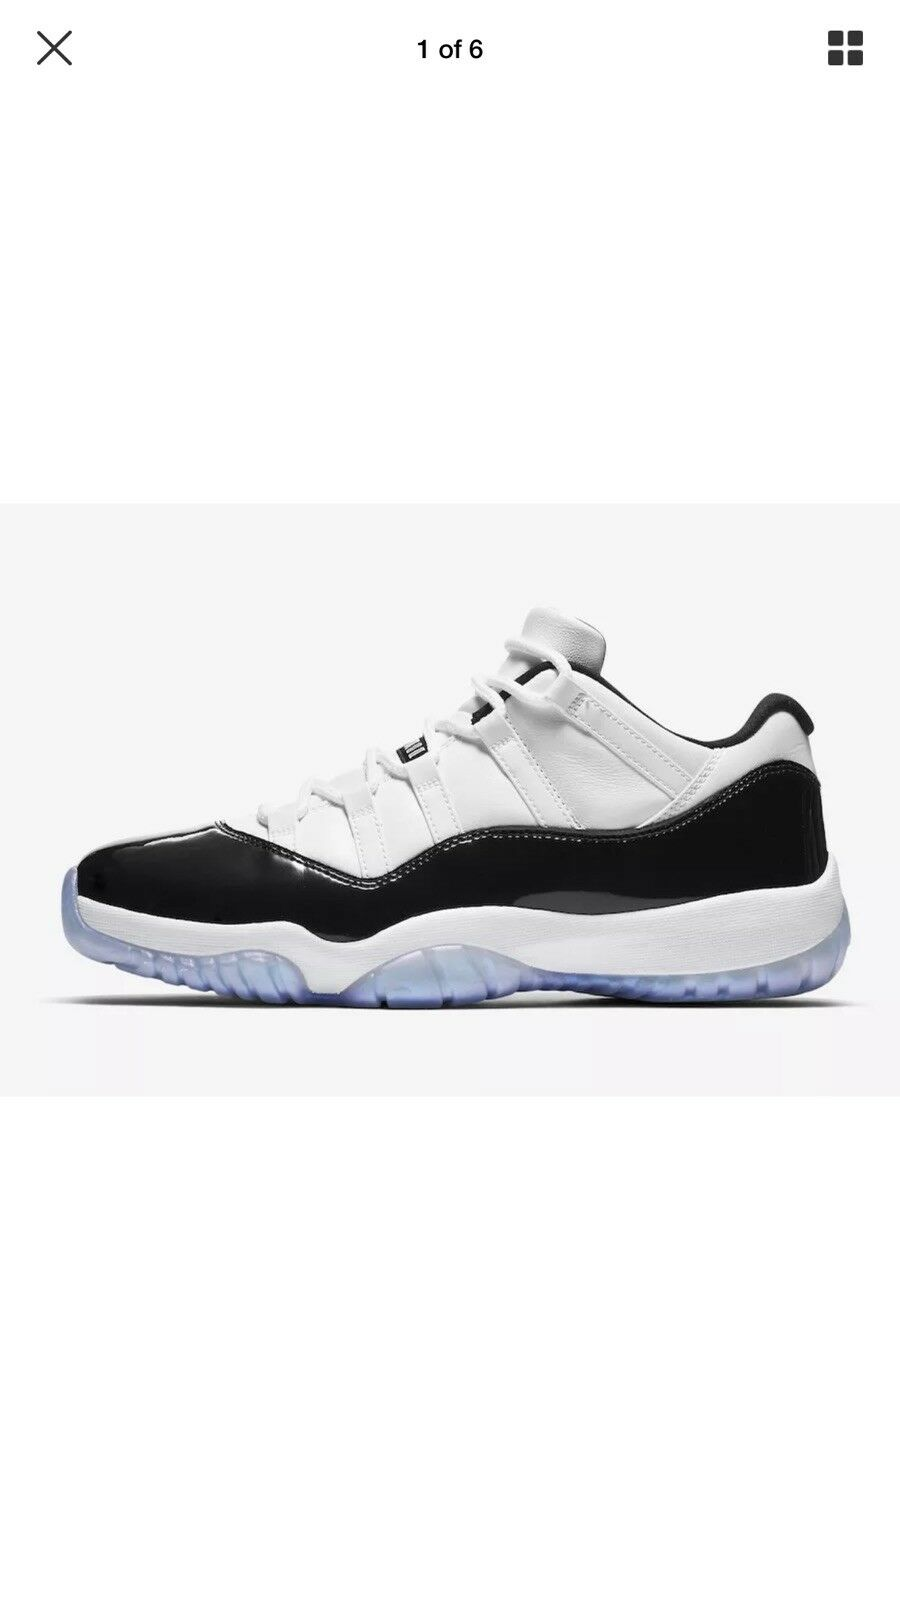 Nike Air Jordan 11 Low Retro Emerald Green Rise Easter IN STOCK Uomo 11